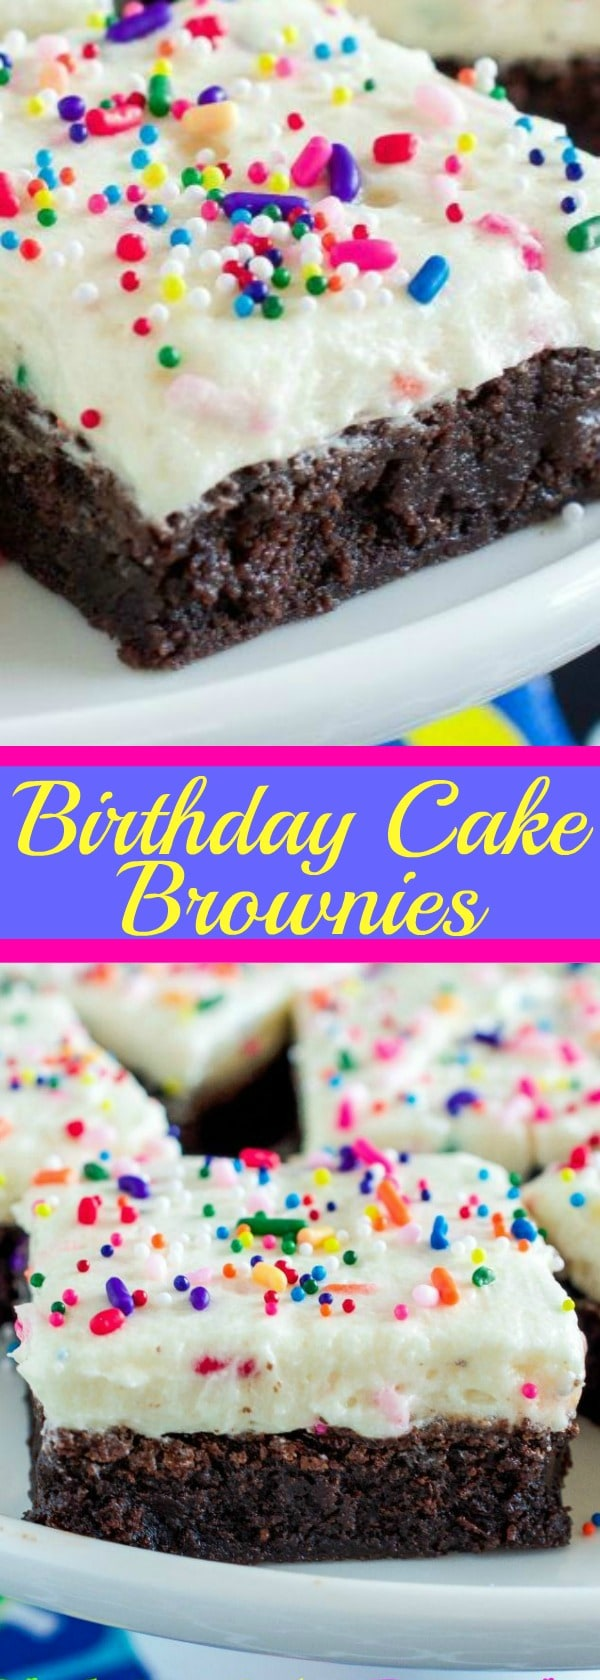 Birthday Cake Brownies - The BEST fudge brownies with birthday cake frosting!!!